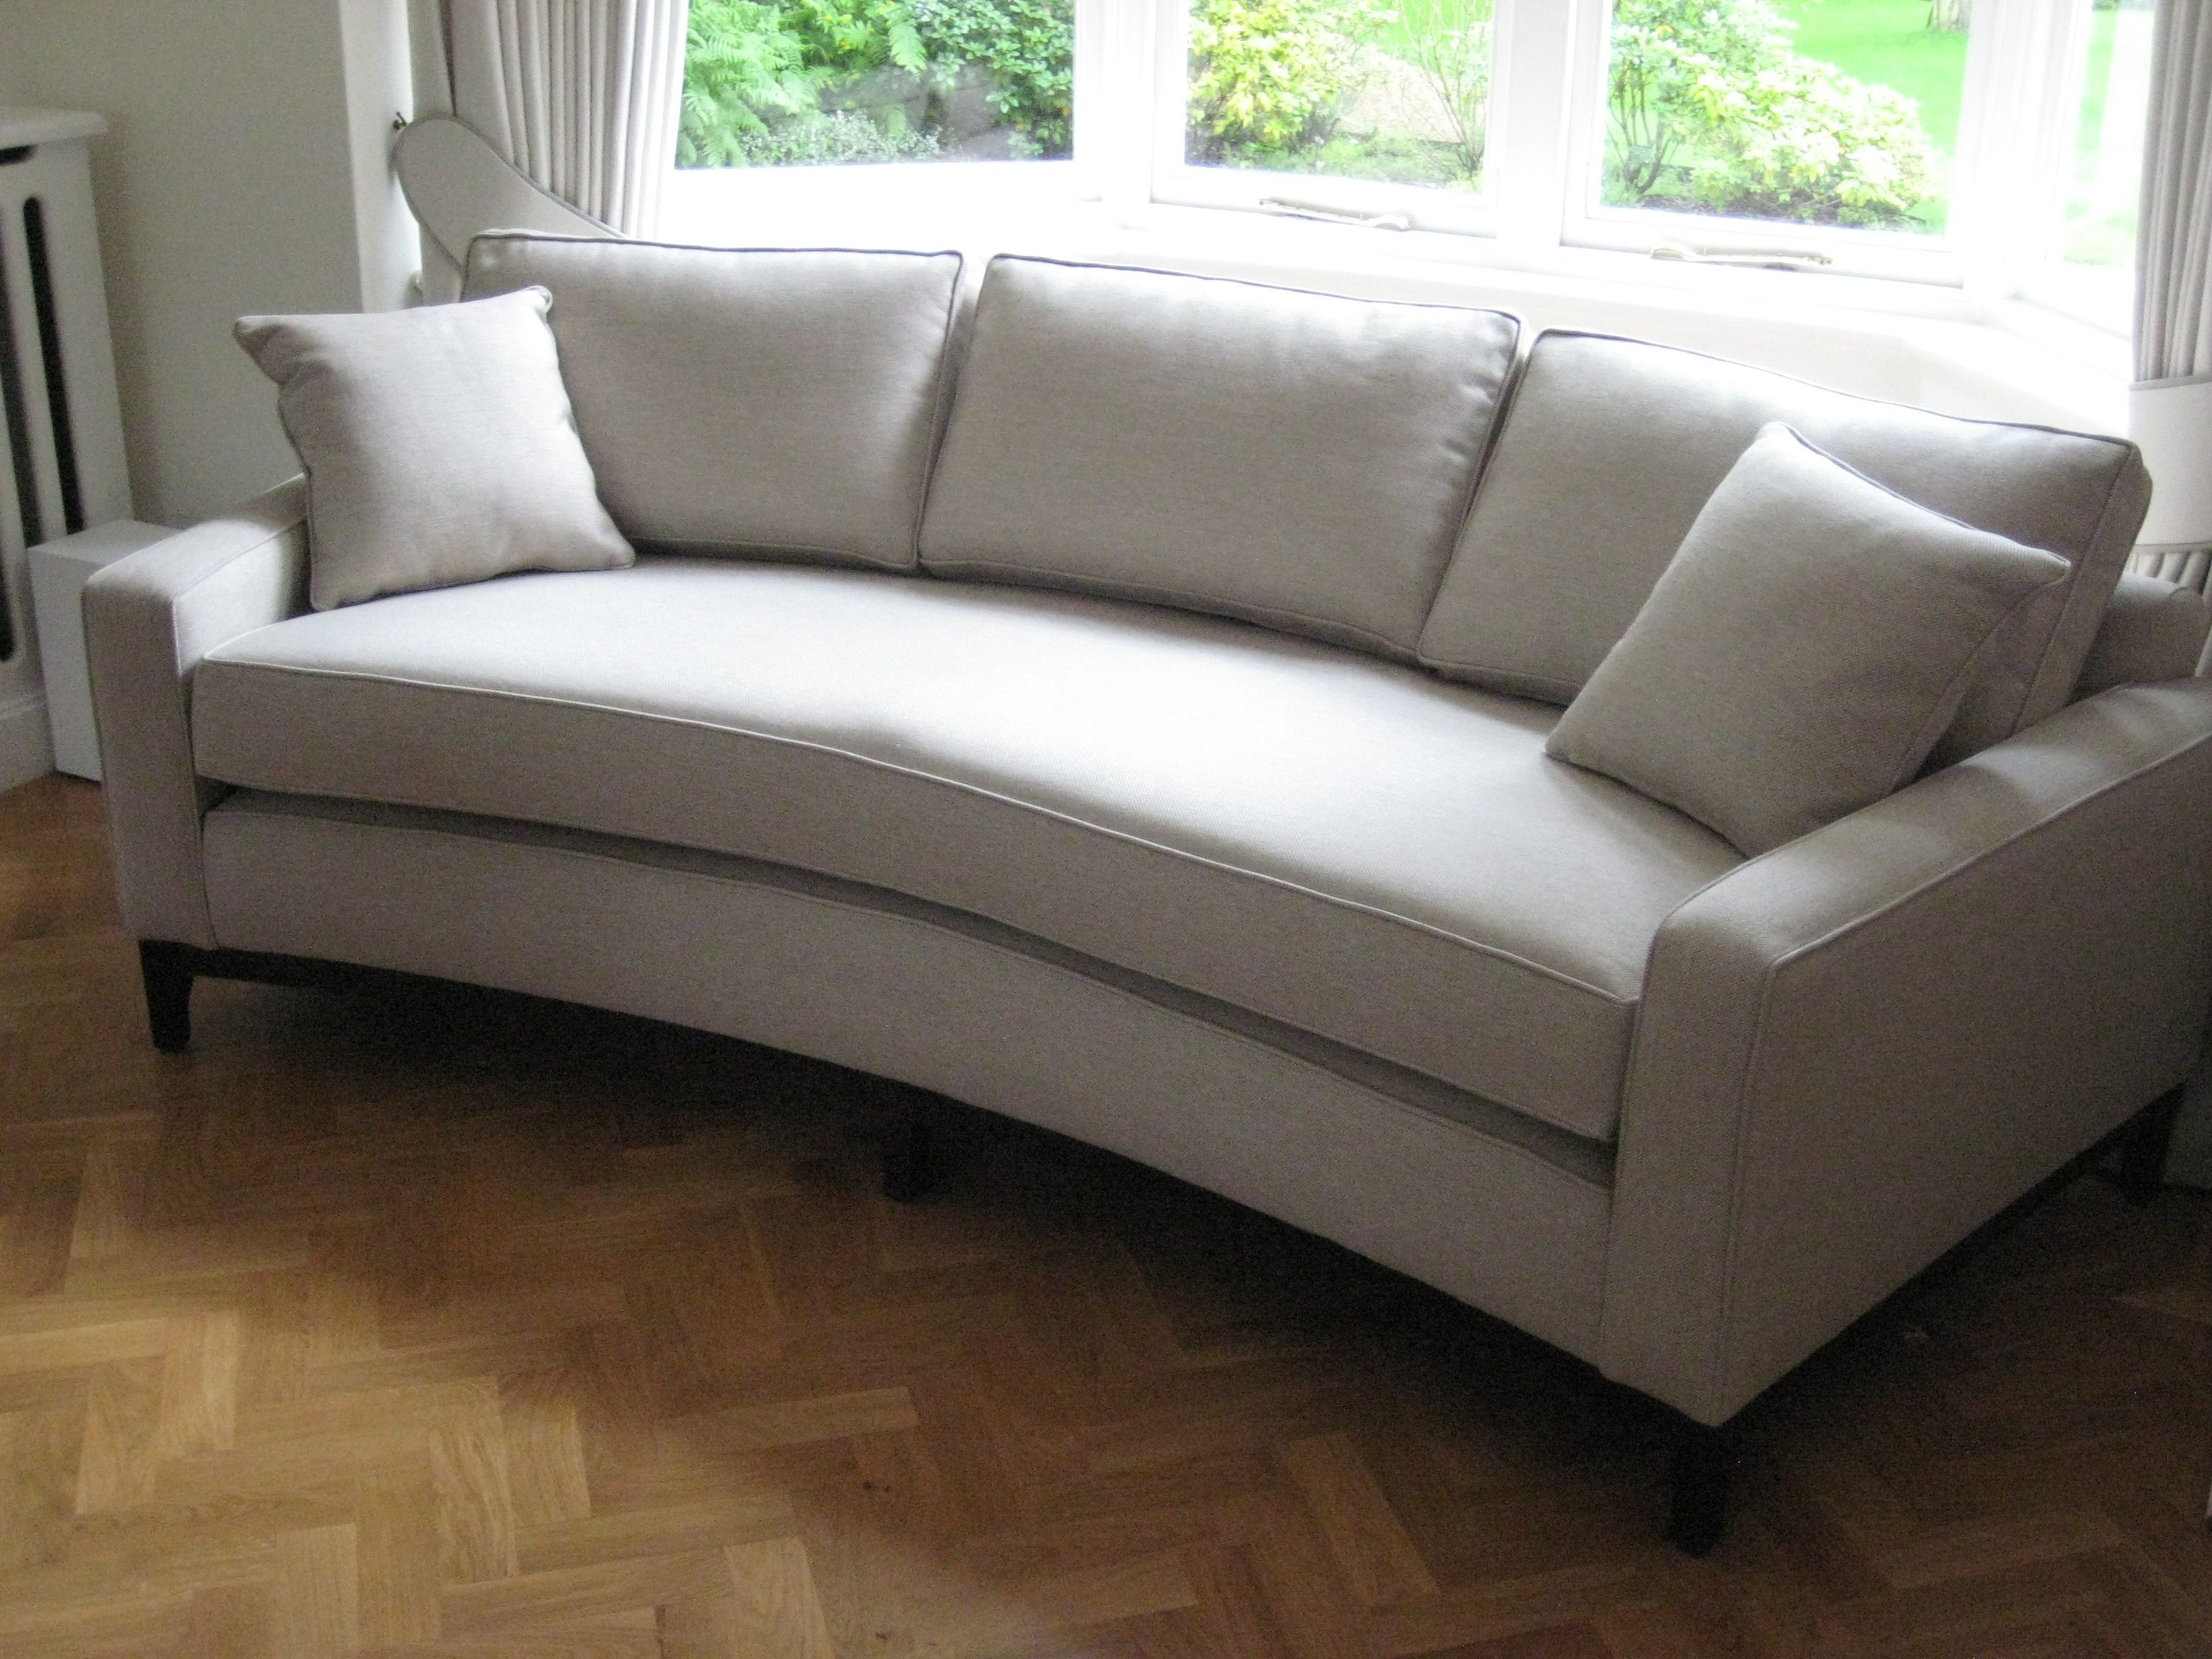 bespoke curved sofa perfect for a bay window this has one base  - bespoke curved sofa perfect for a bay window this has one base seatcushion to create a very simple look the dark wood frame and legsaccentuate…